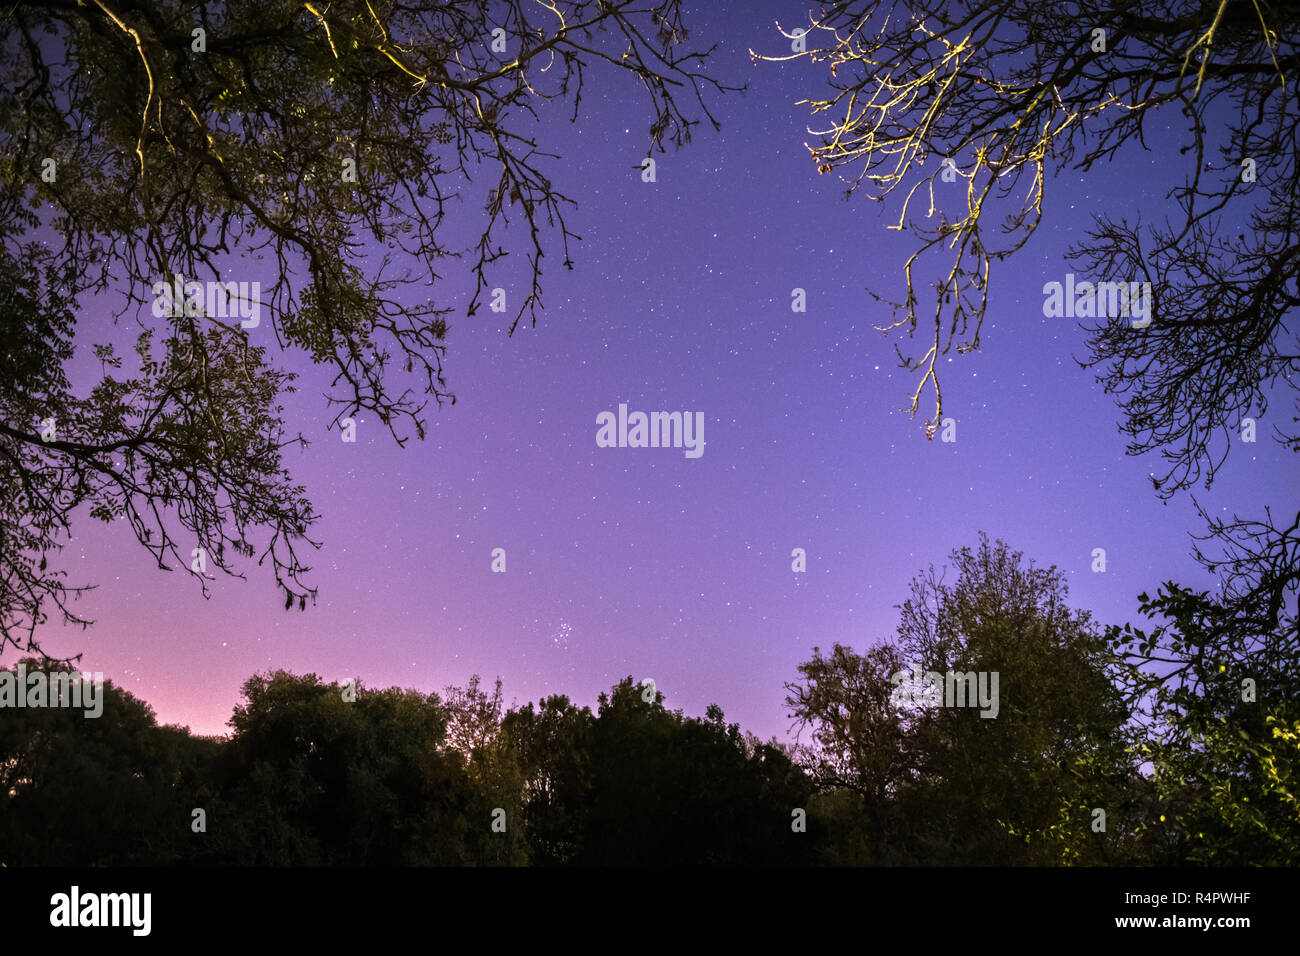 Colourful night sky dotted with stars framed by trees and branches - Stock Image